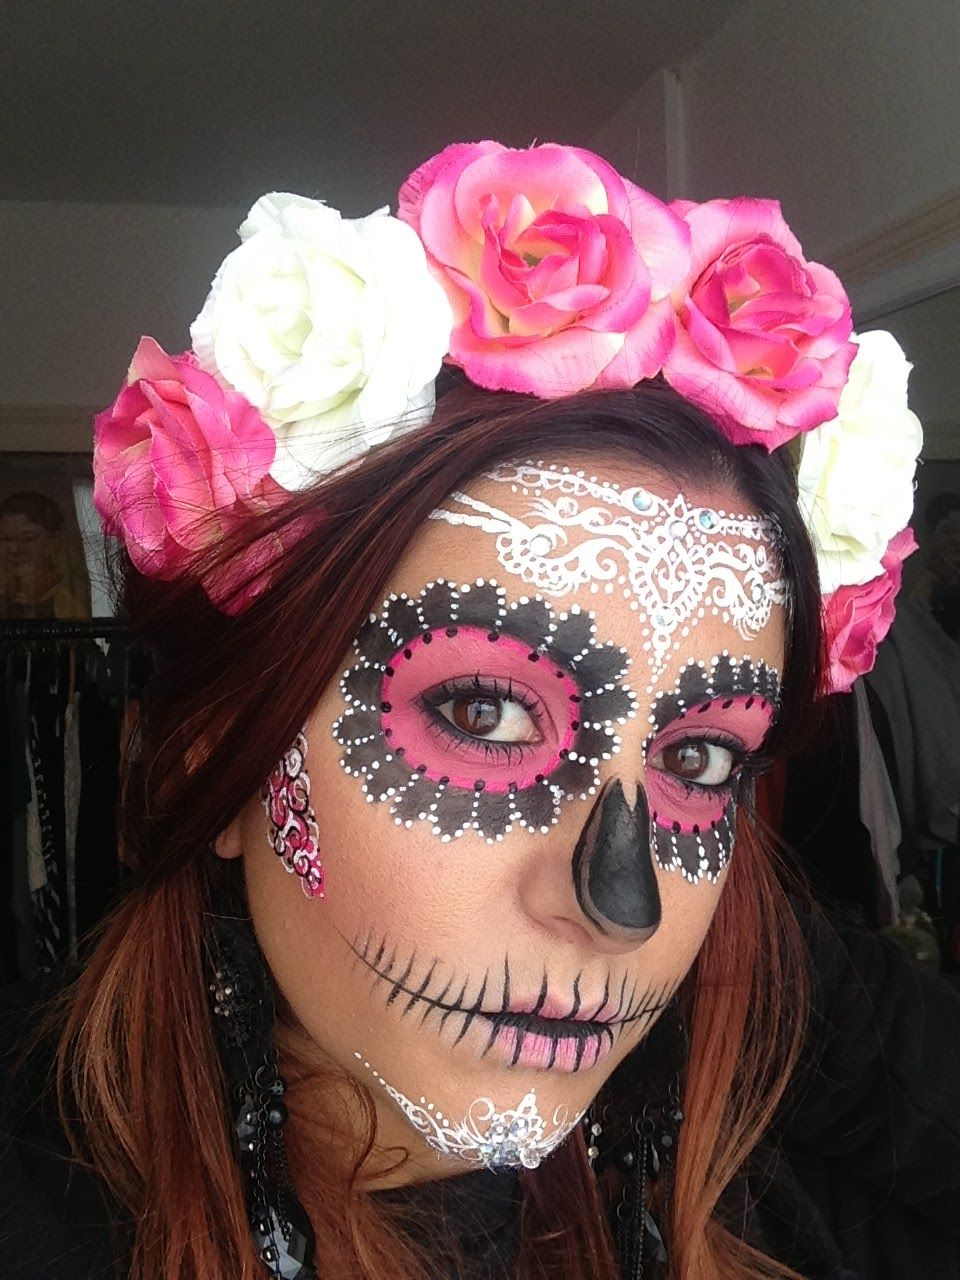 Crown brush sugar skull make up tutorial by annabella lingis incredible lace sugar skull make for dia de los muertos use the tutorial or try real lace as a stencil and an airbrush 20 day of the dead makeup ideas baditri Images